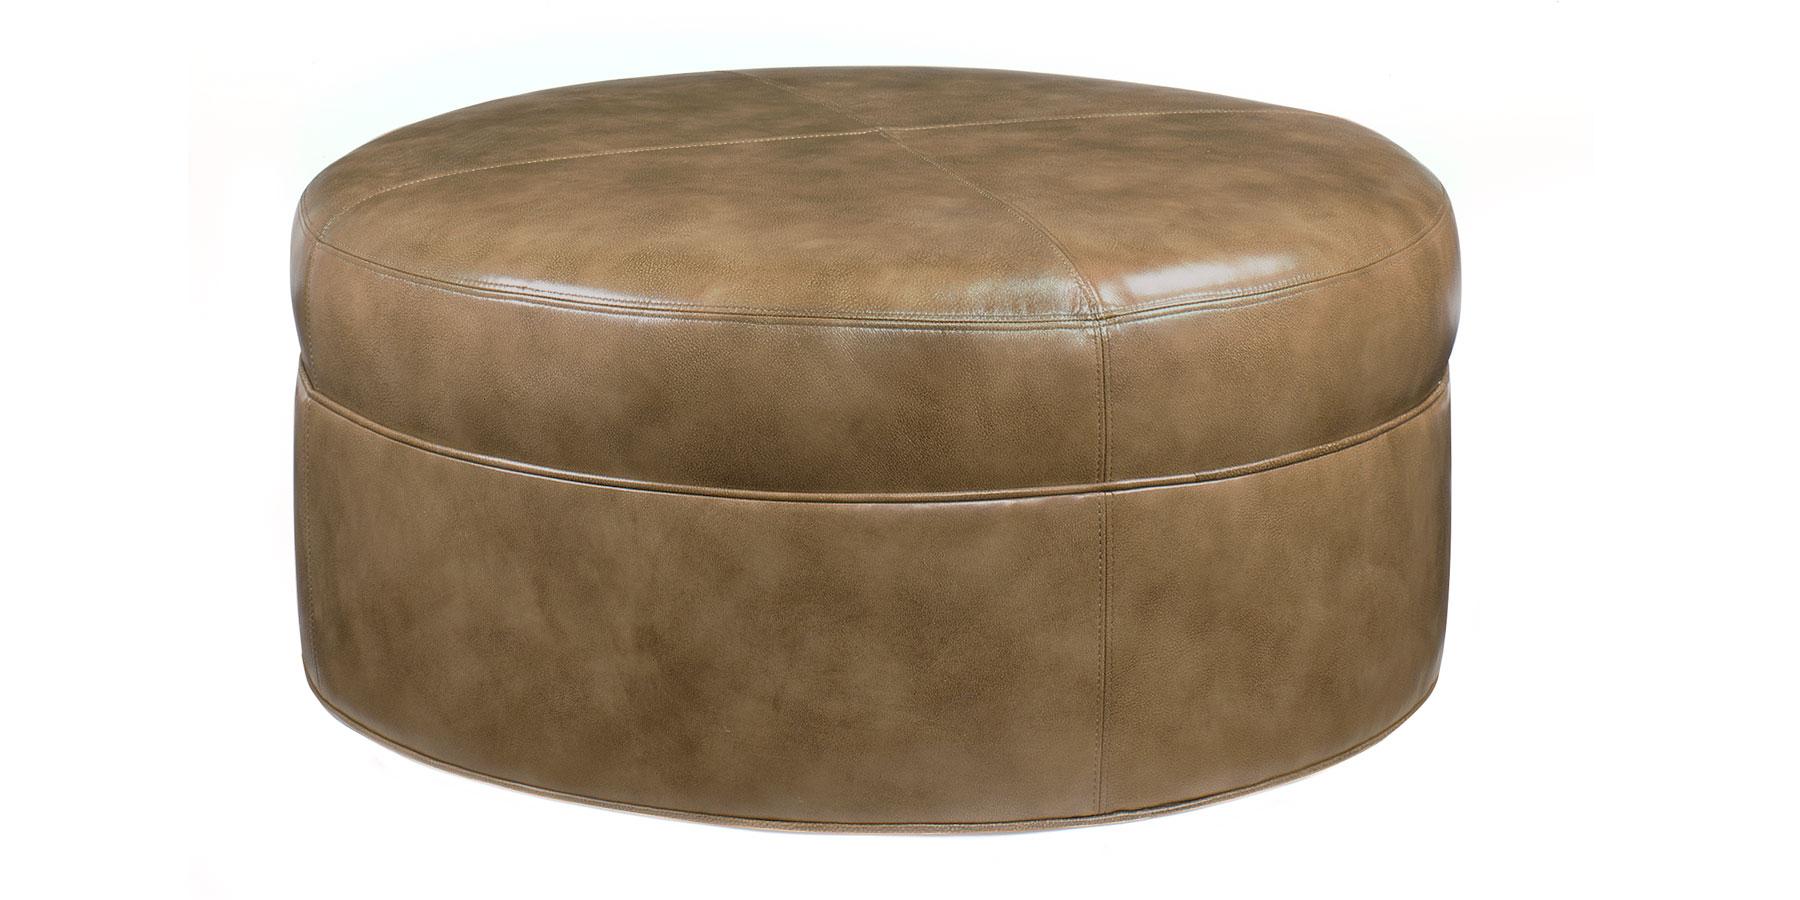 Large round leather drum ottoman club furniture Round leather ottoman coffee table